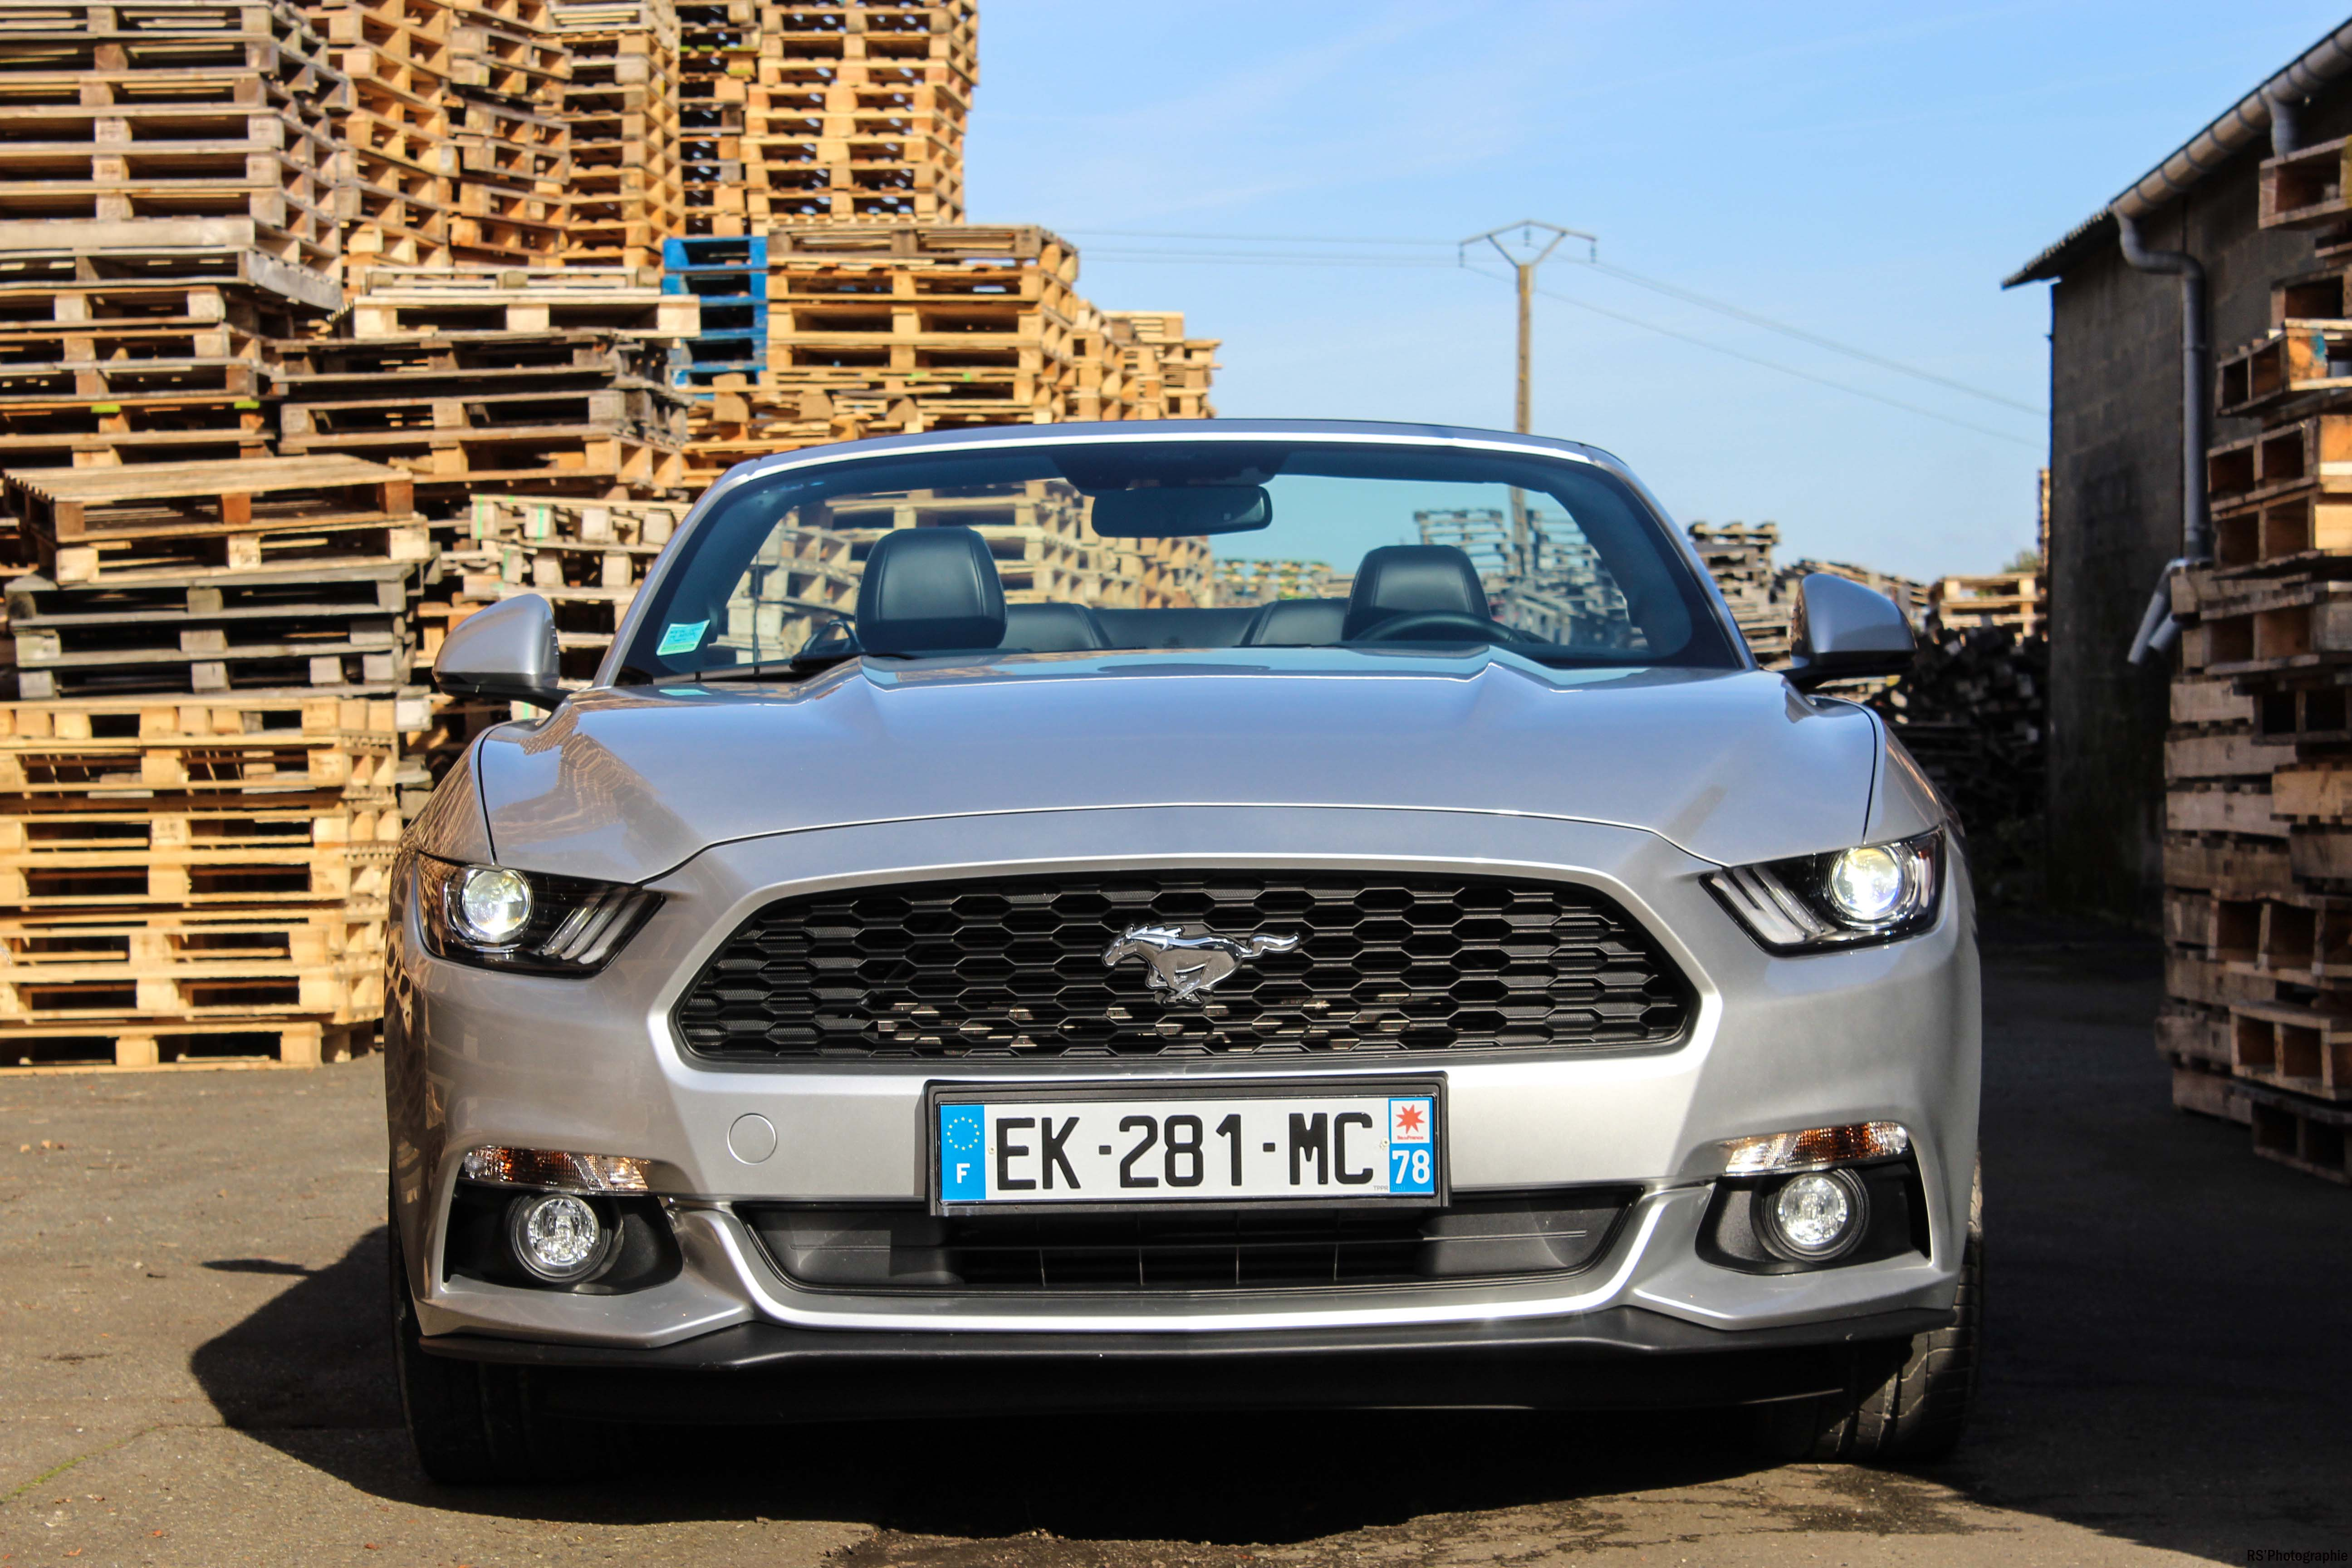 fordmustangeconvertible26-ford-mustang-convertible-ecoboost-avant-front-Arnaud Demasier-RSPhotographie